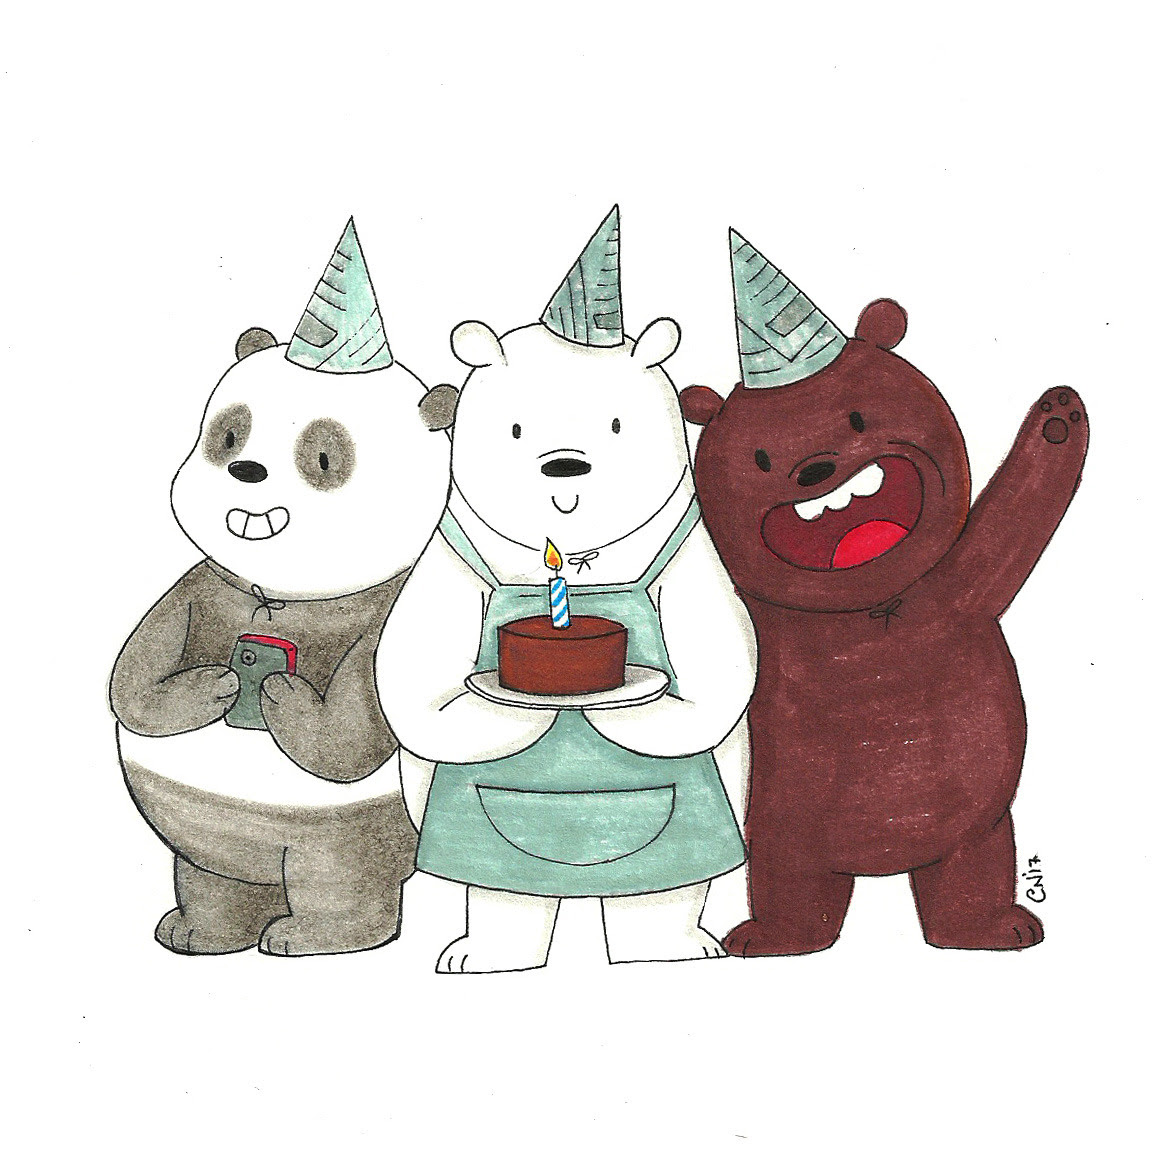 Birthday card I made for my best friend who loves We Bare Bears! Prints and more in my shop!